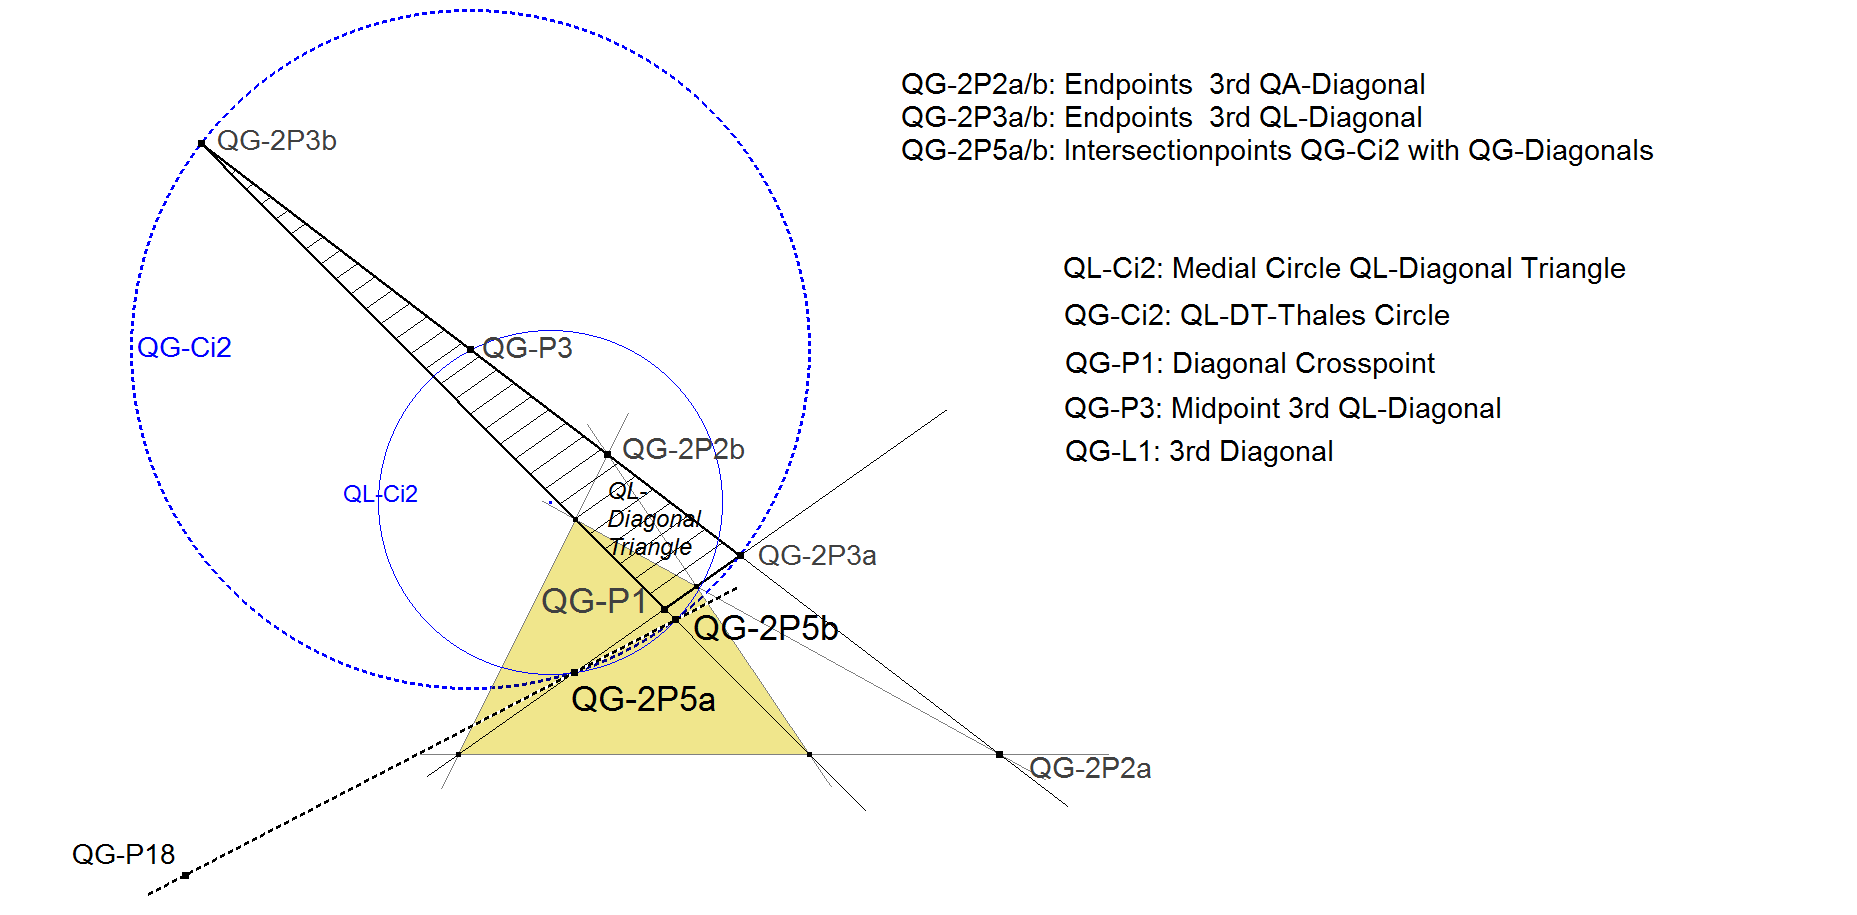 QG-2P5-Intersection points QG-Ci2 with QG-Diagonals-02